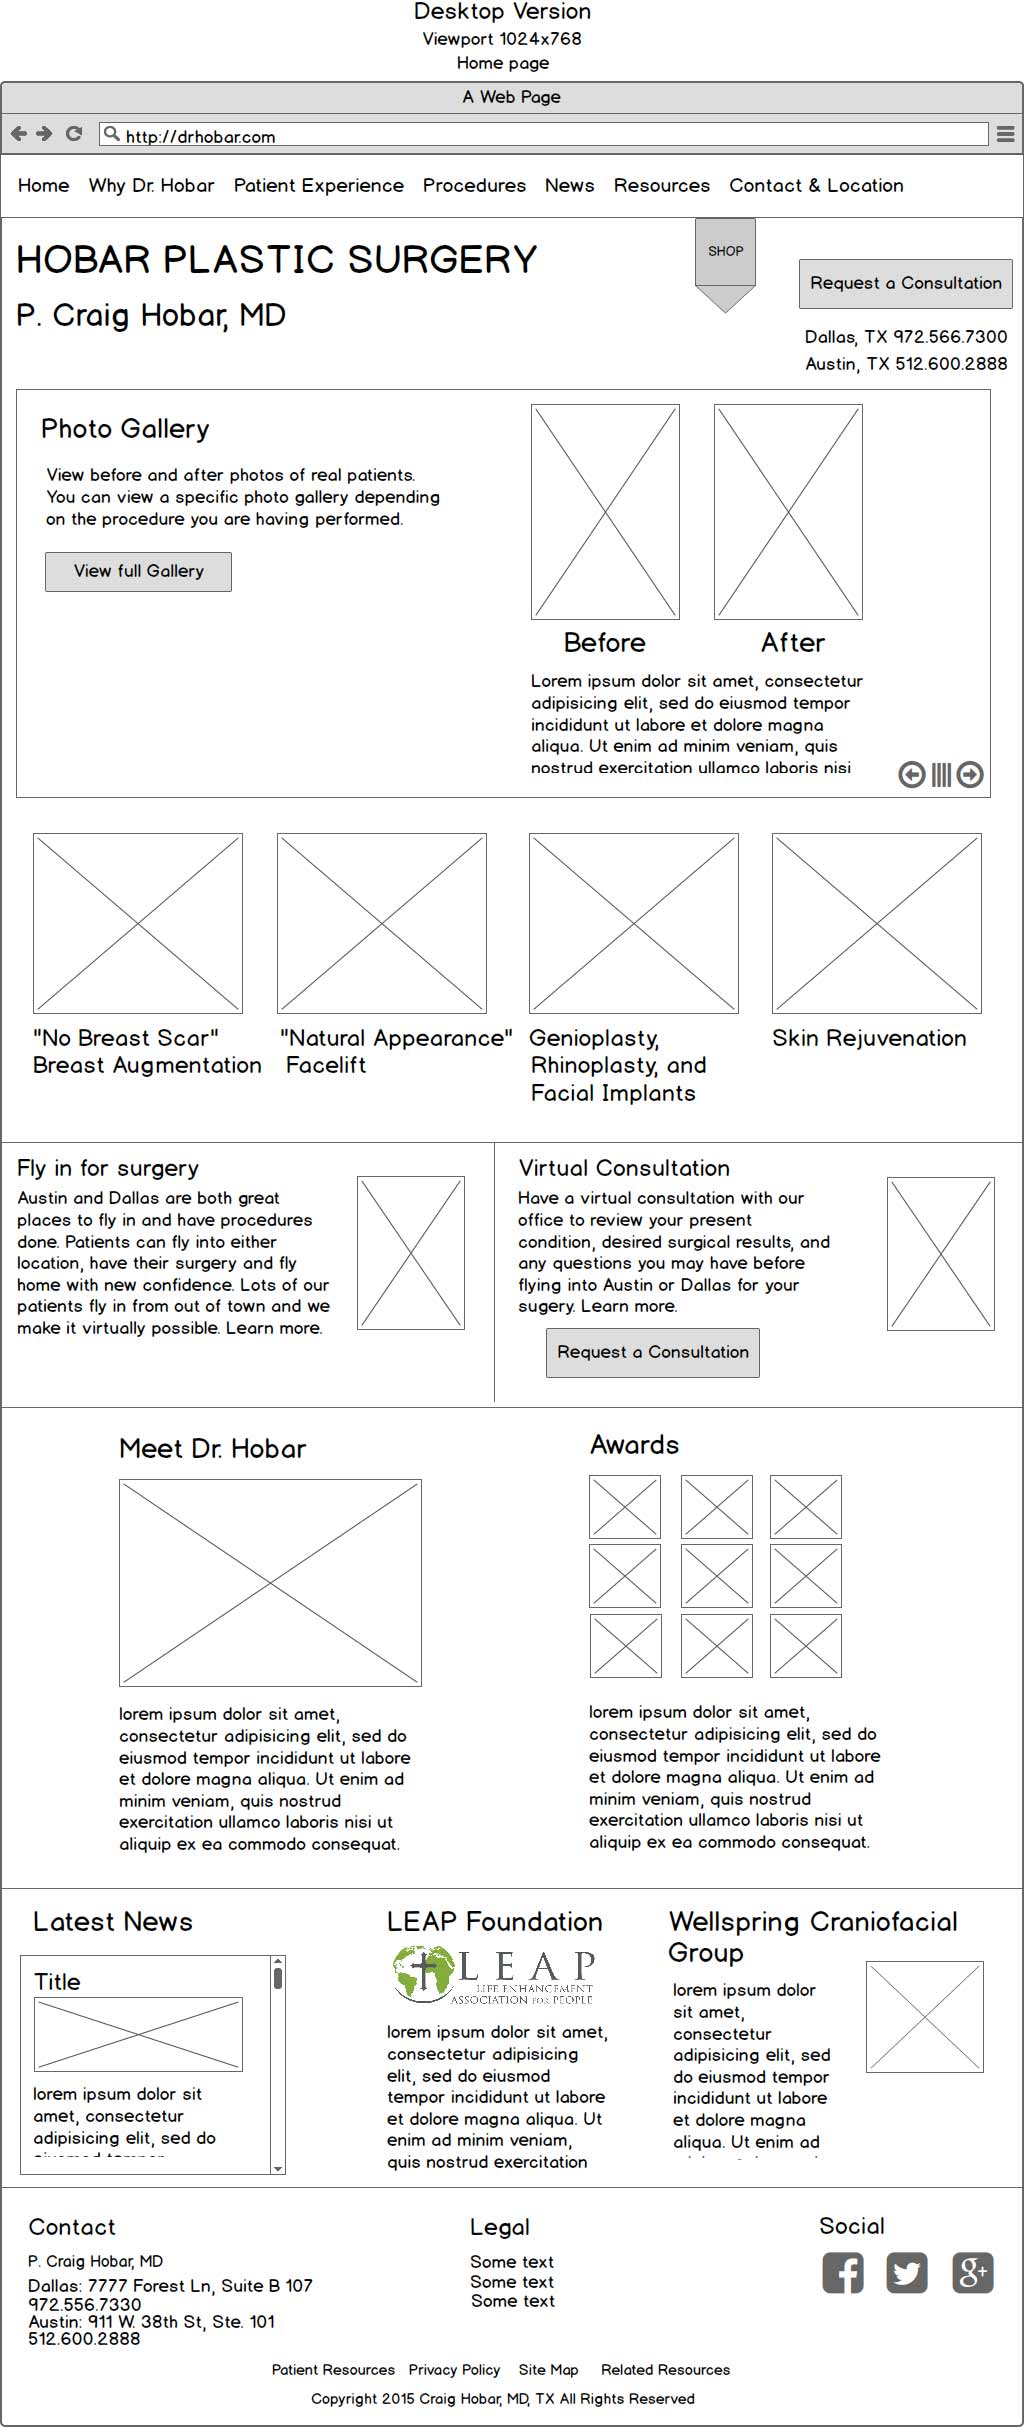 dr-hobar-wireframe - home page